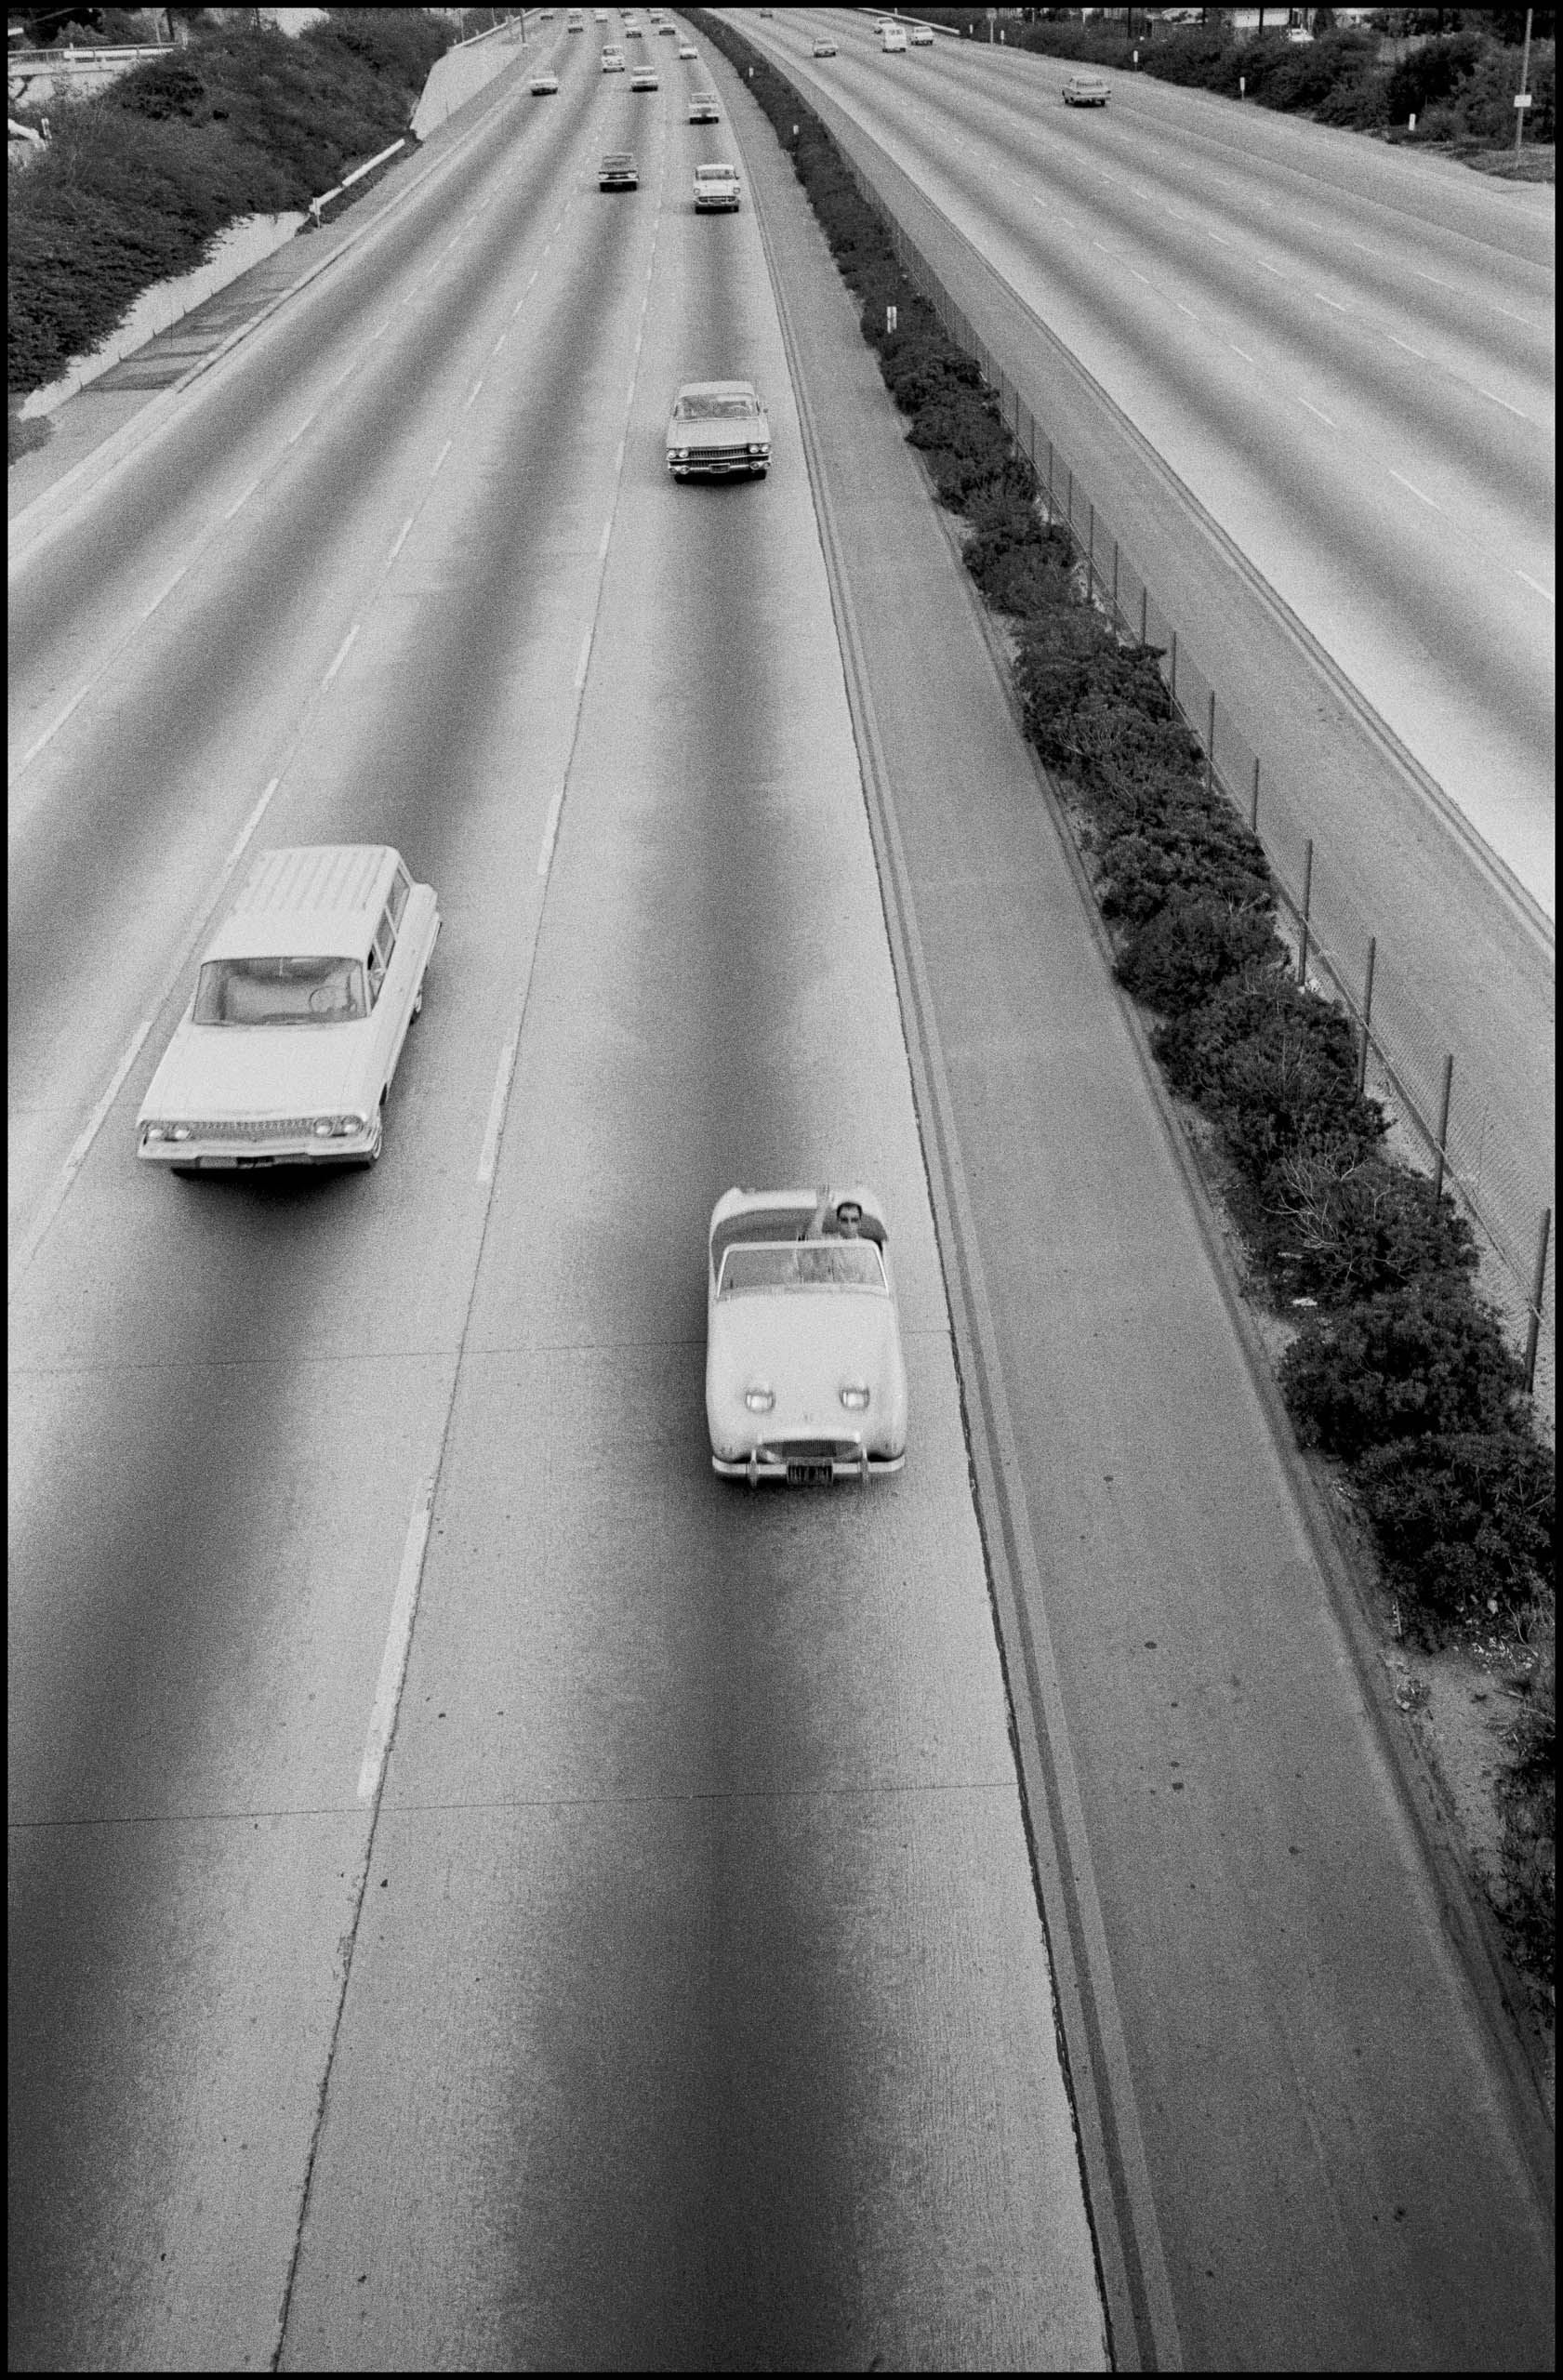 USA. Los Angeles. 1964.Photos by Bruce Davidson/Magnum Photos